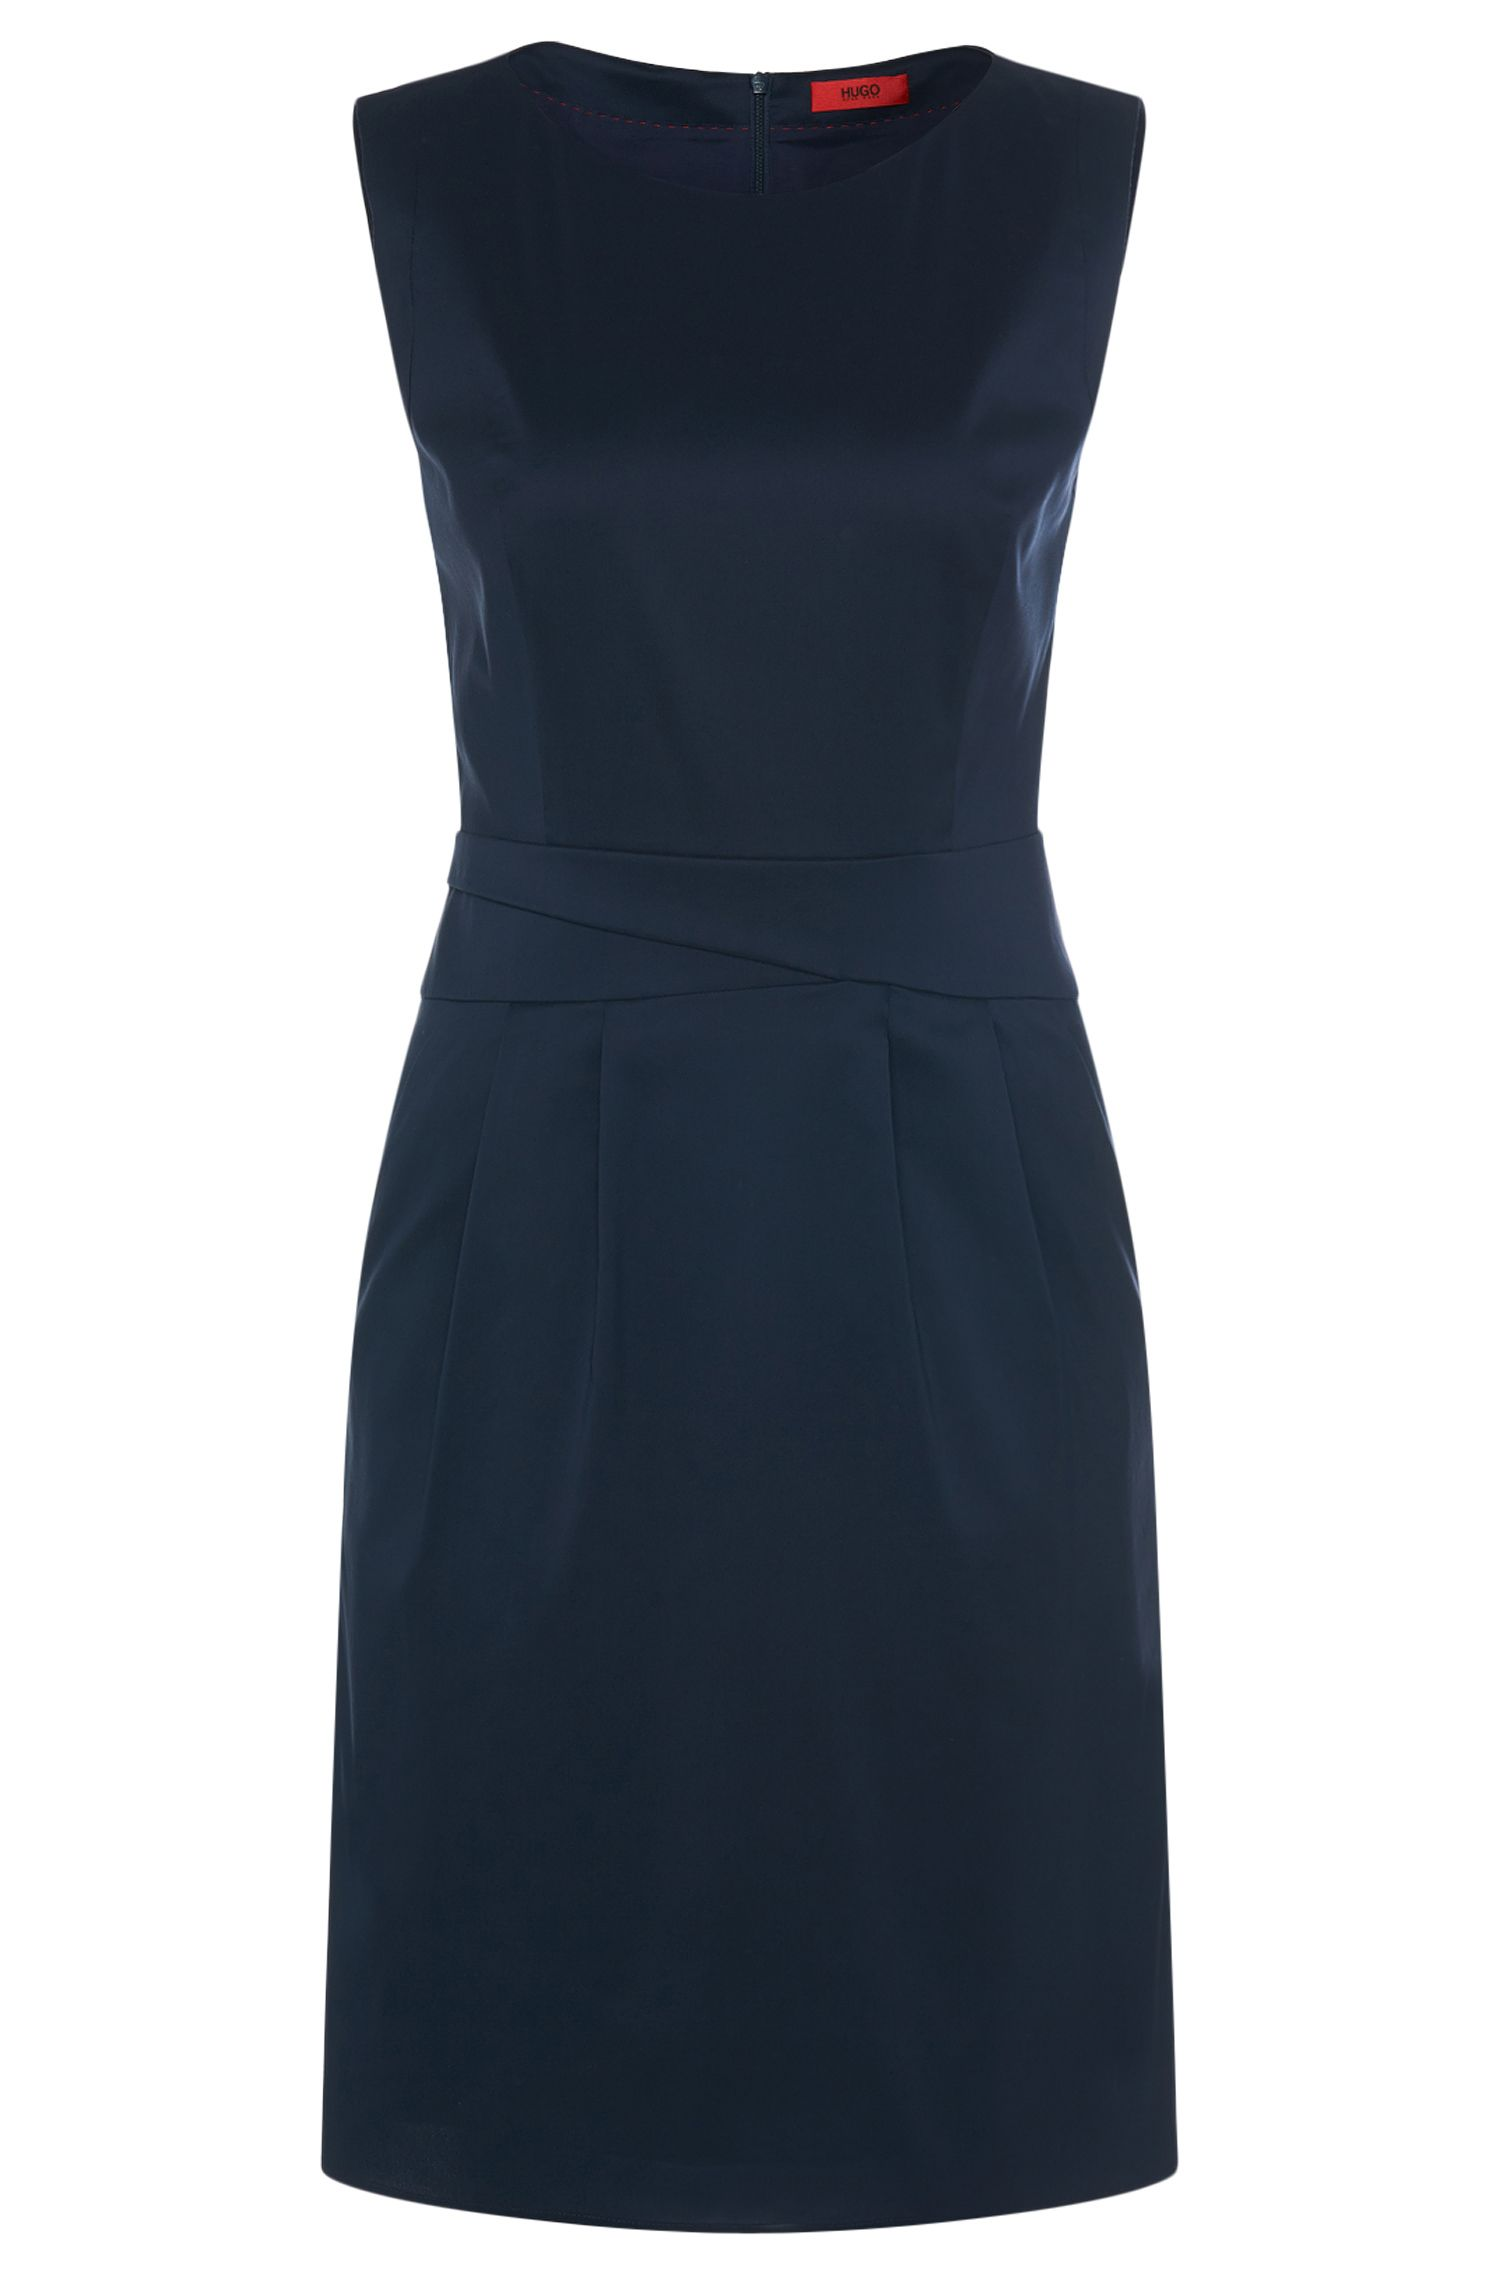 Sleeveless dress in cotton blend: 'Kaliles-4'